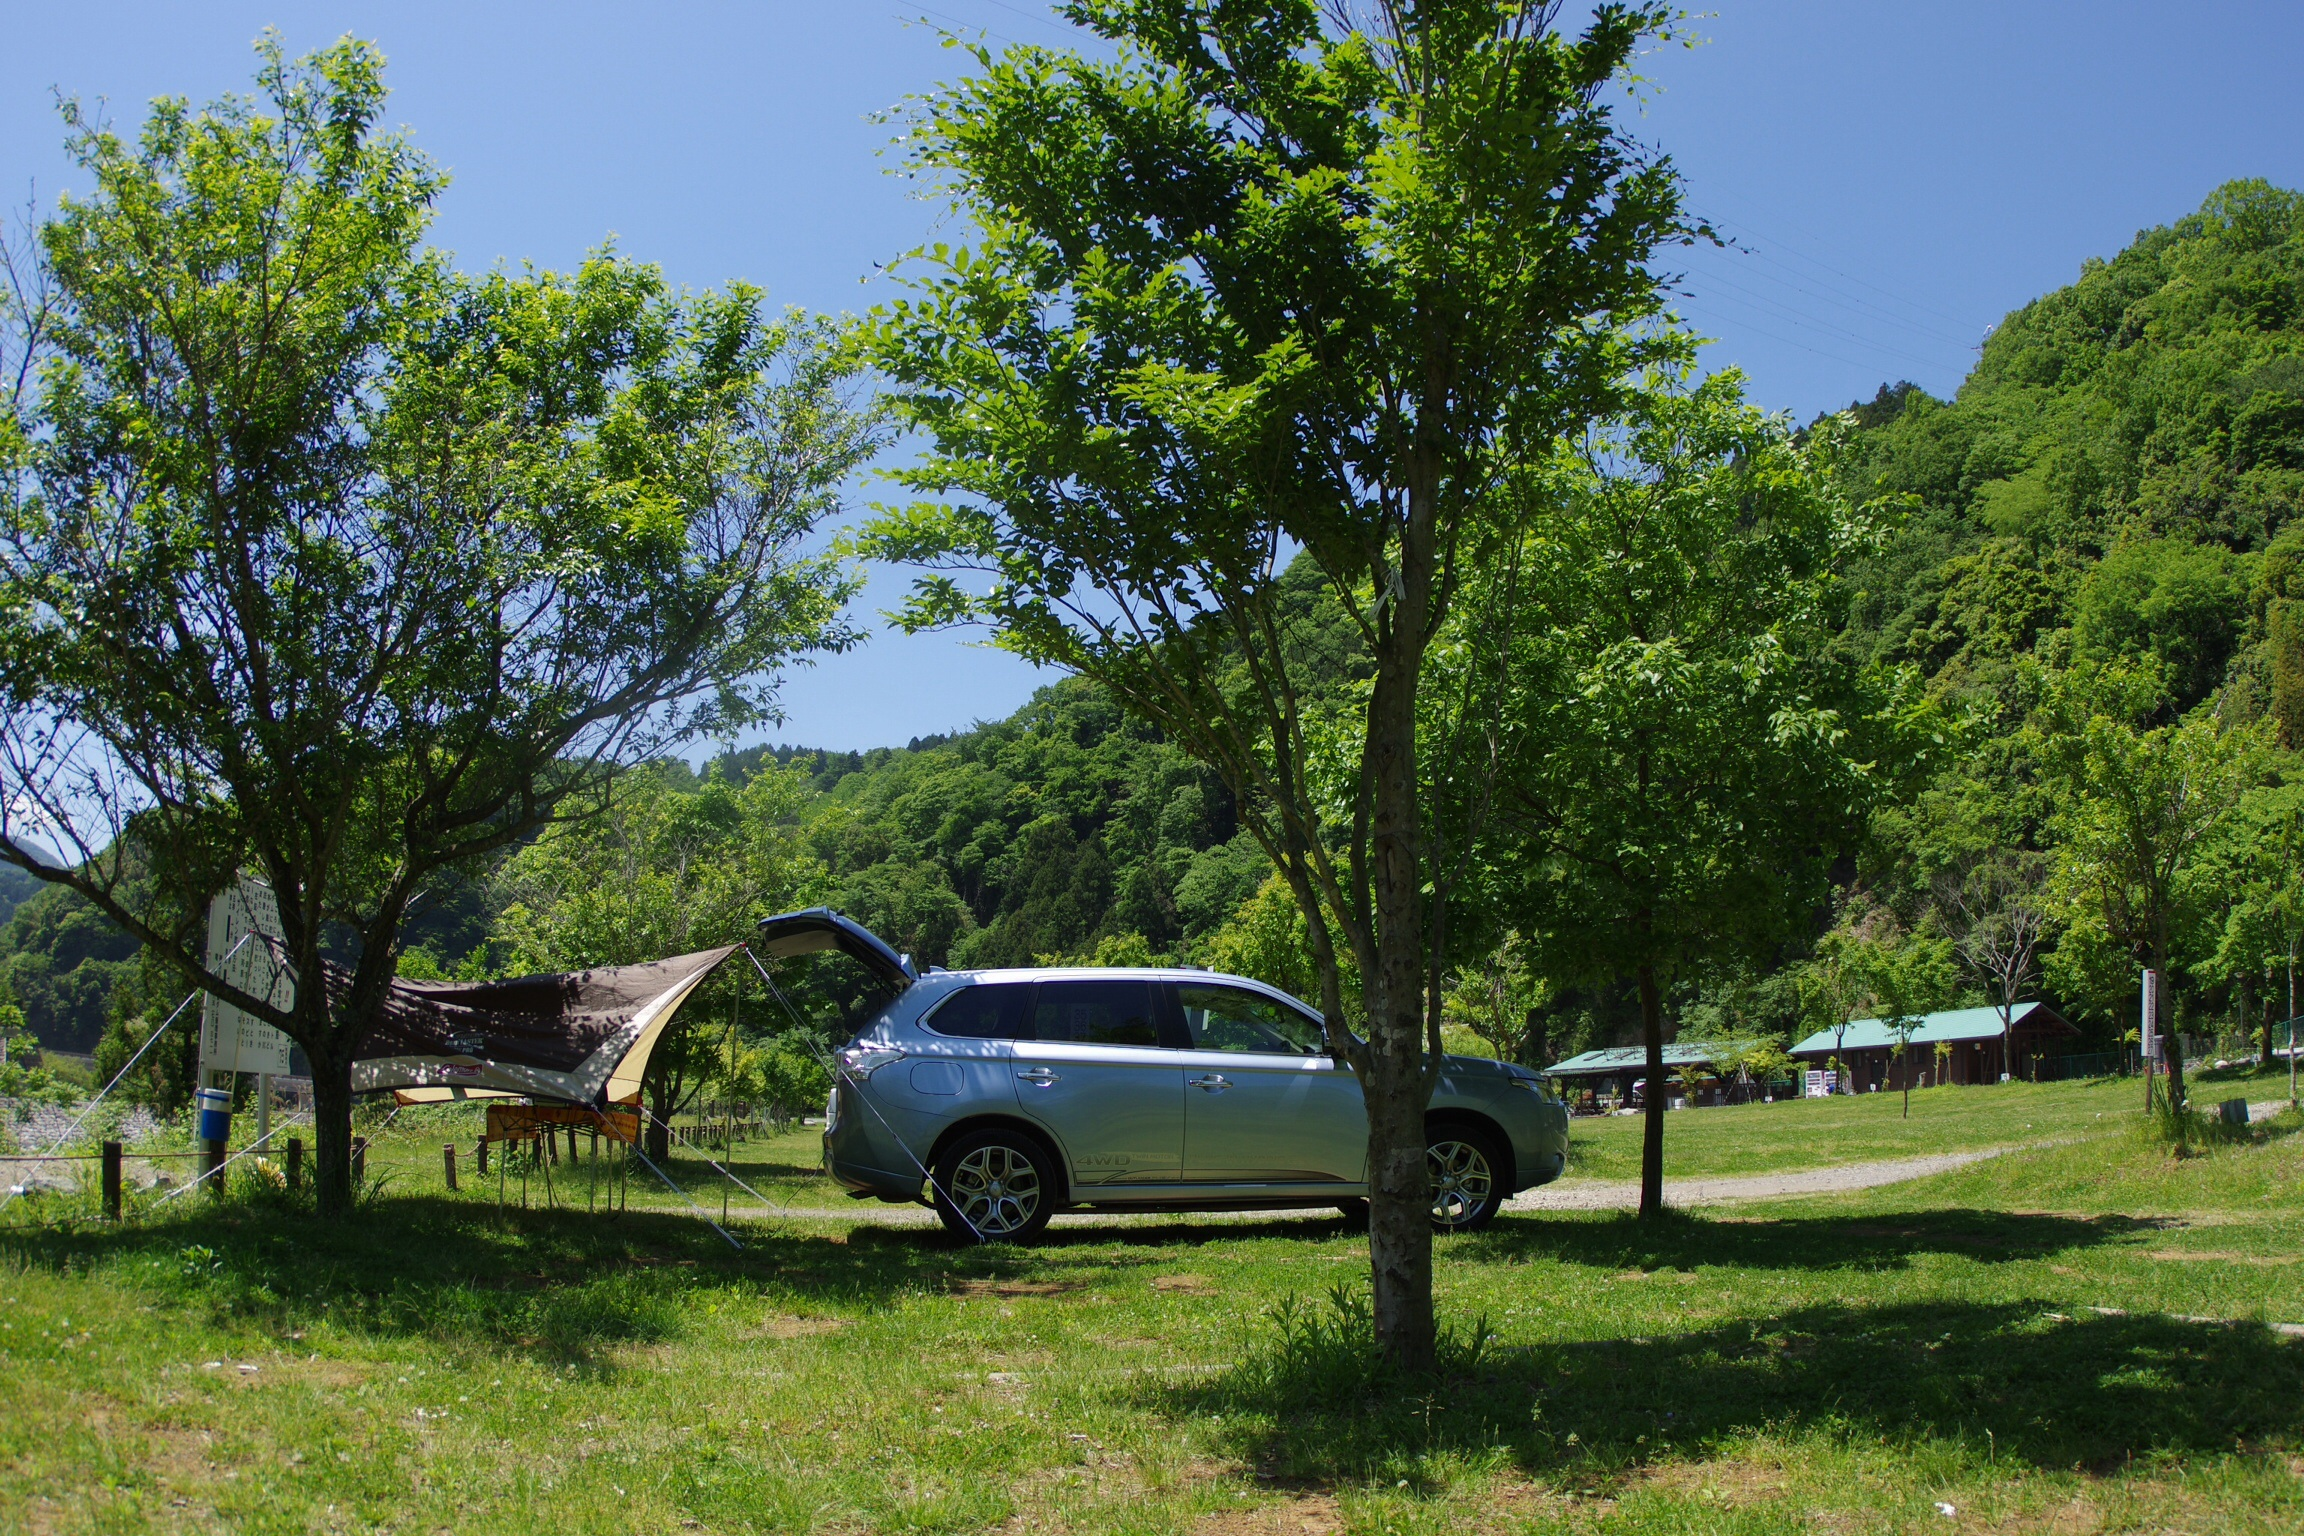 Outlander phev at camp